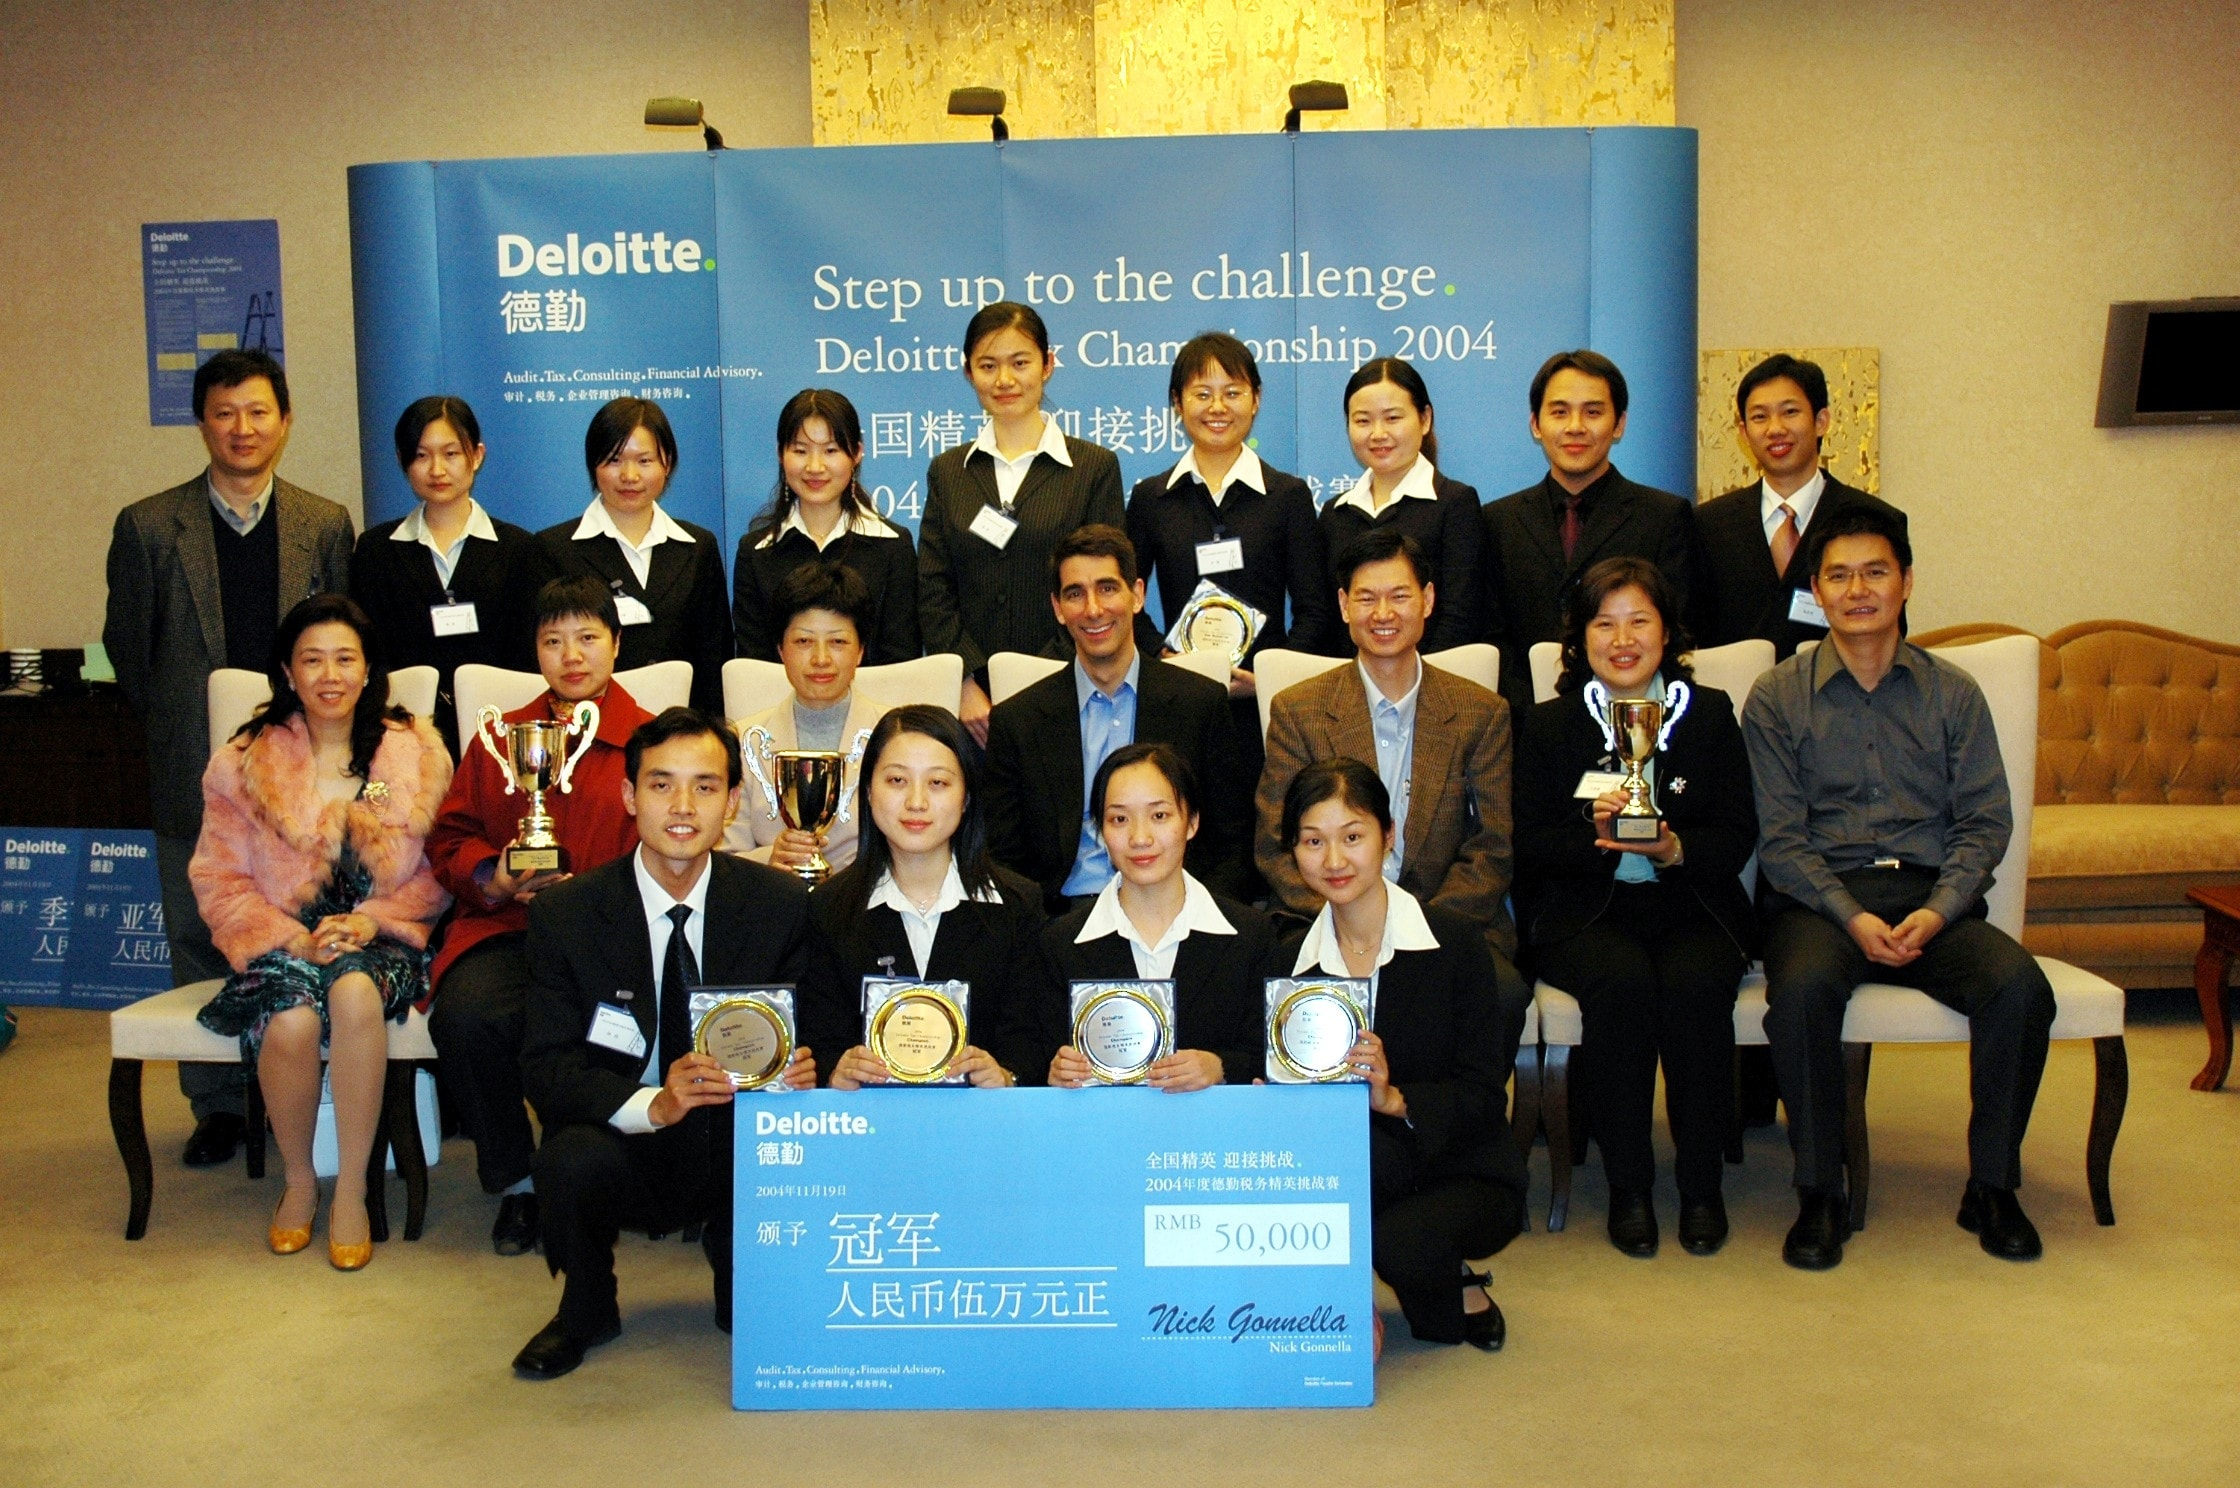 deloitte case study competition After facing nearly 60 interscholastic teams in the regional events and 12 teams in the national rounds of the deloitte tax case study competition, two teams have been announced as winners in this annual event.